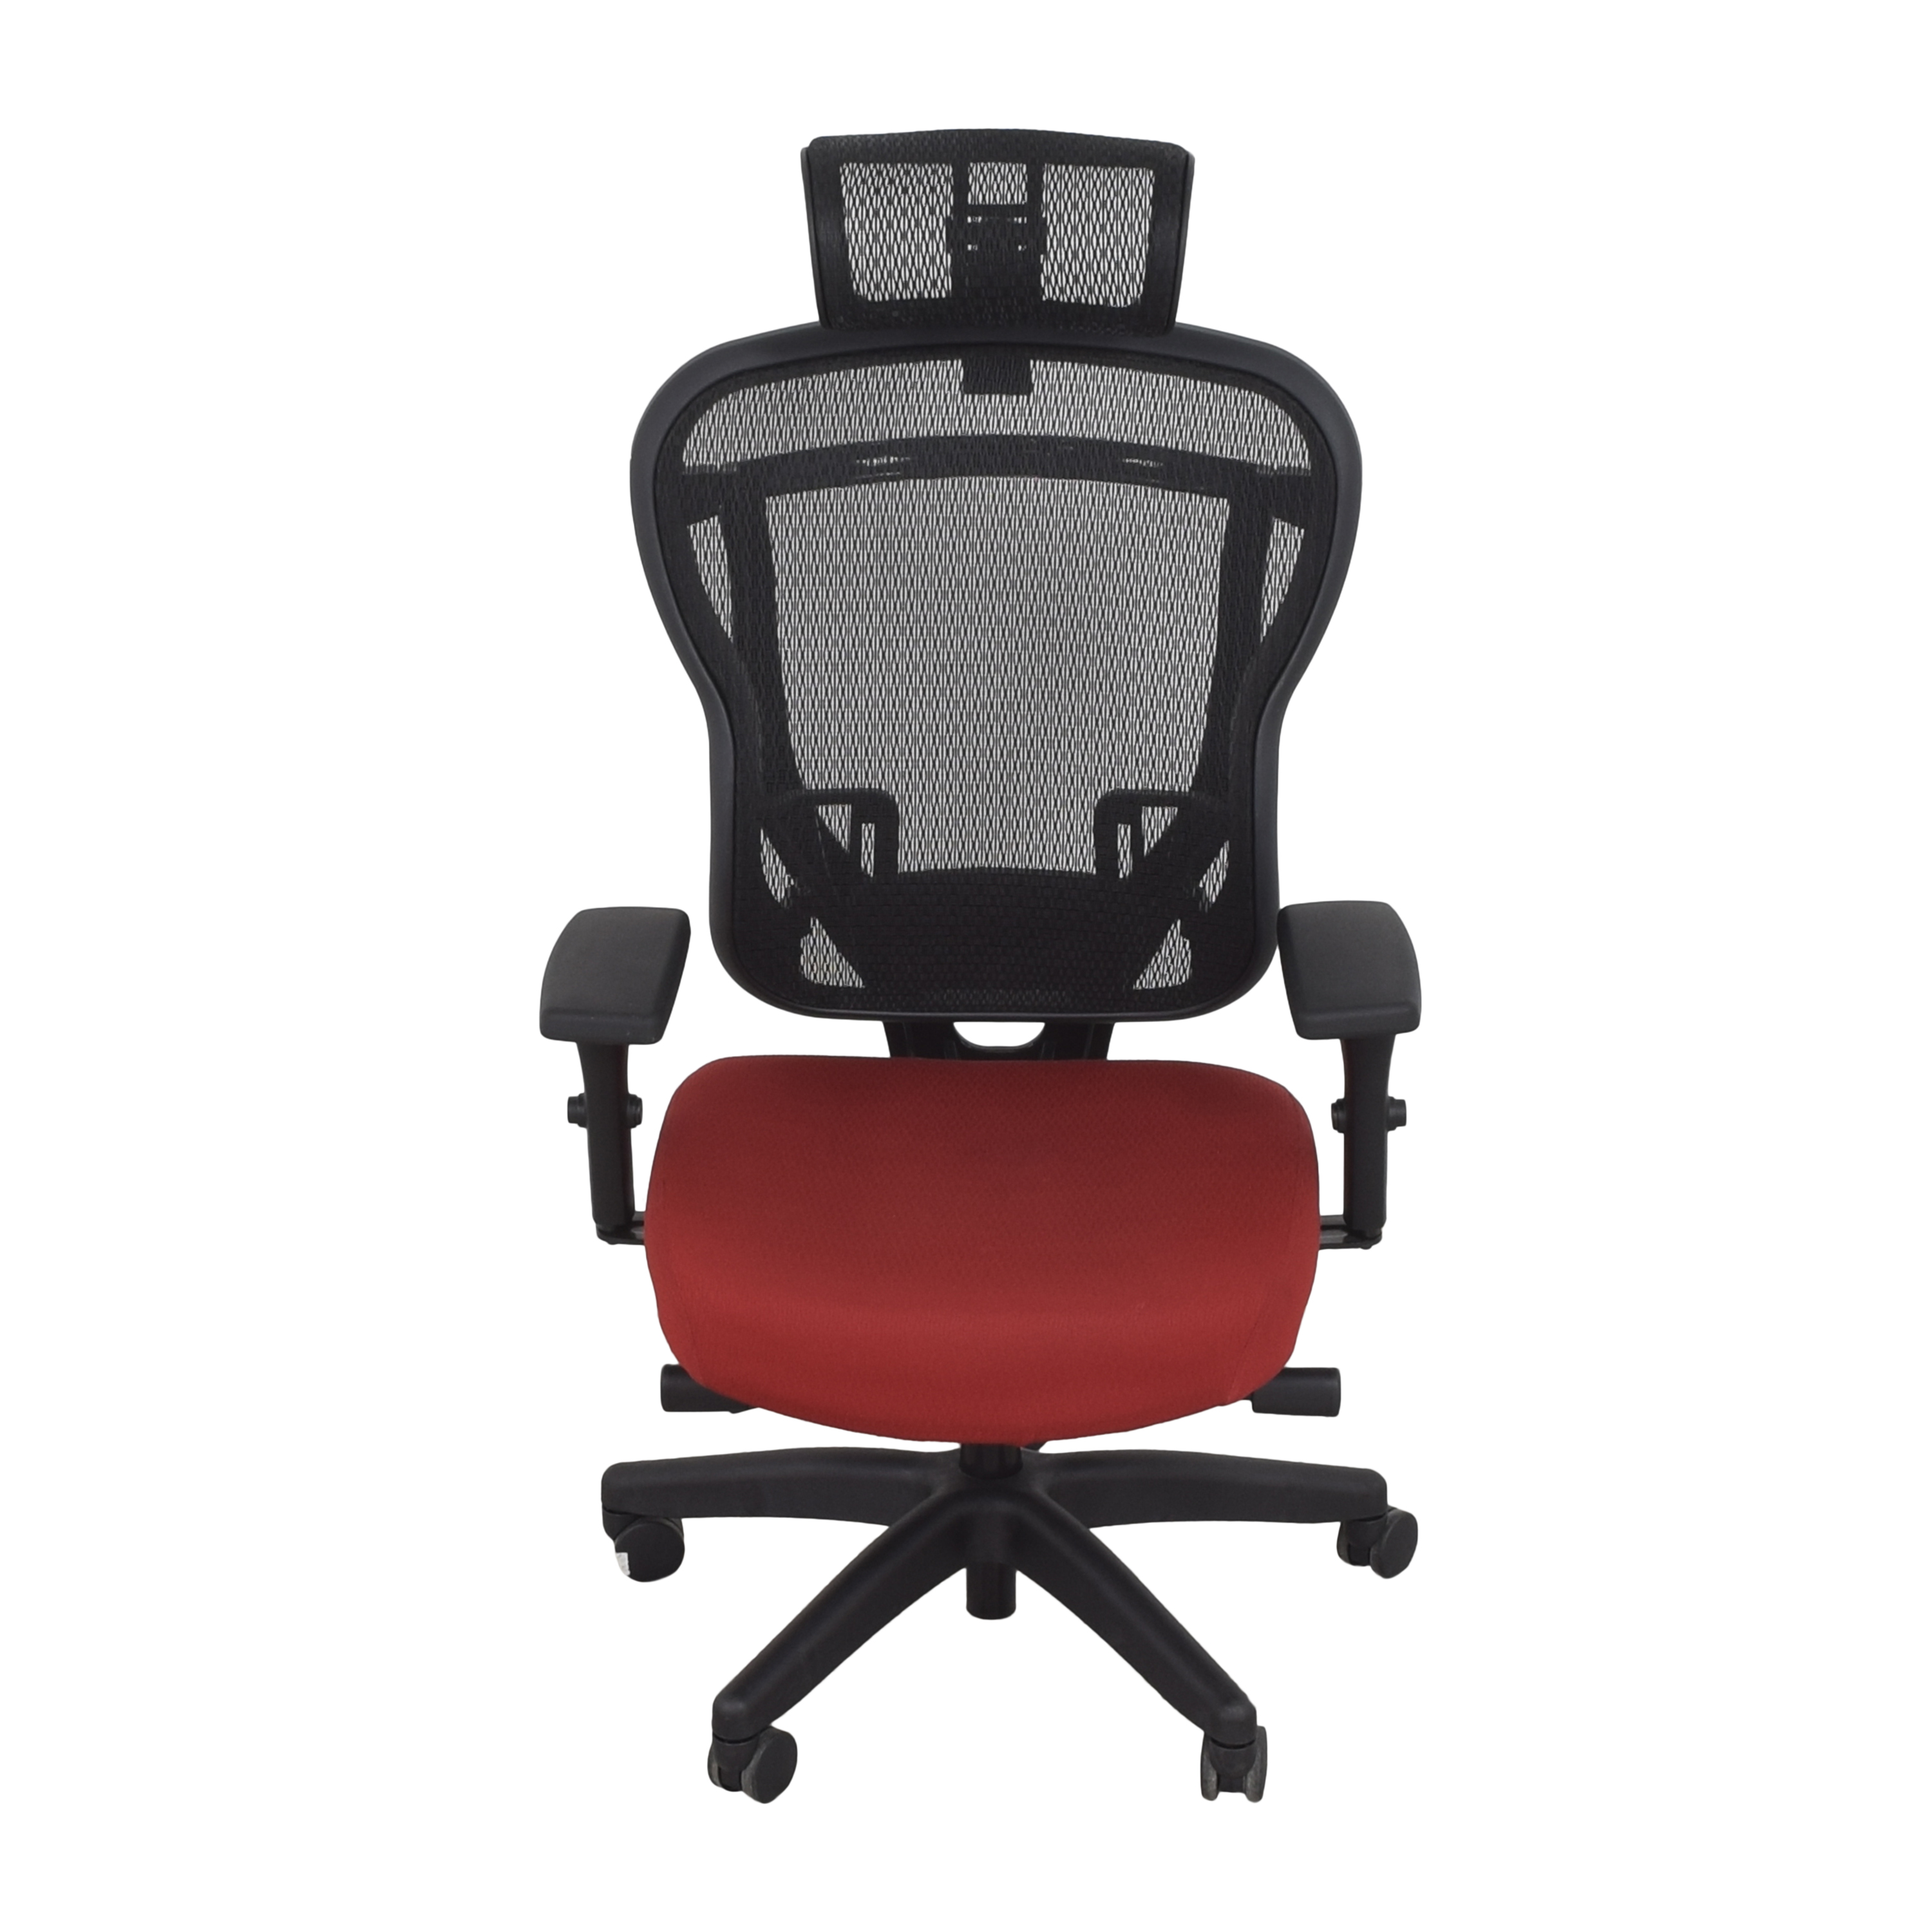 Buzz Seating Buzz Seating Rika Adjustable Task Chair second hand